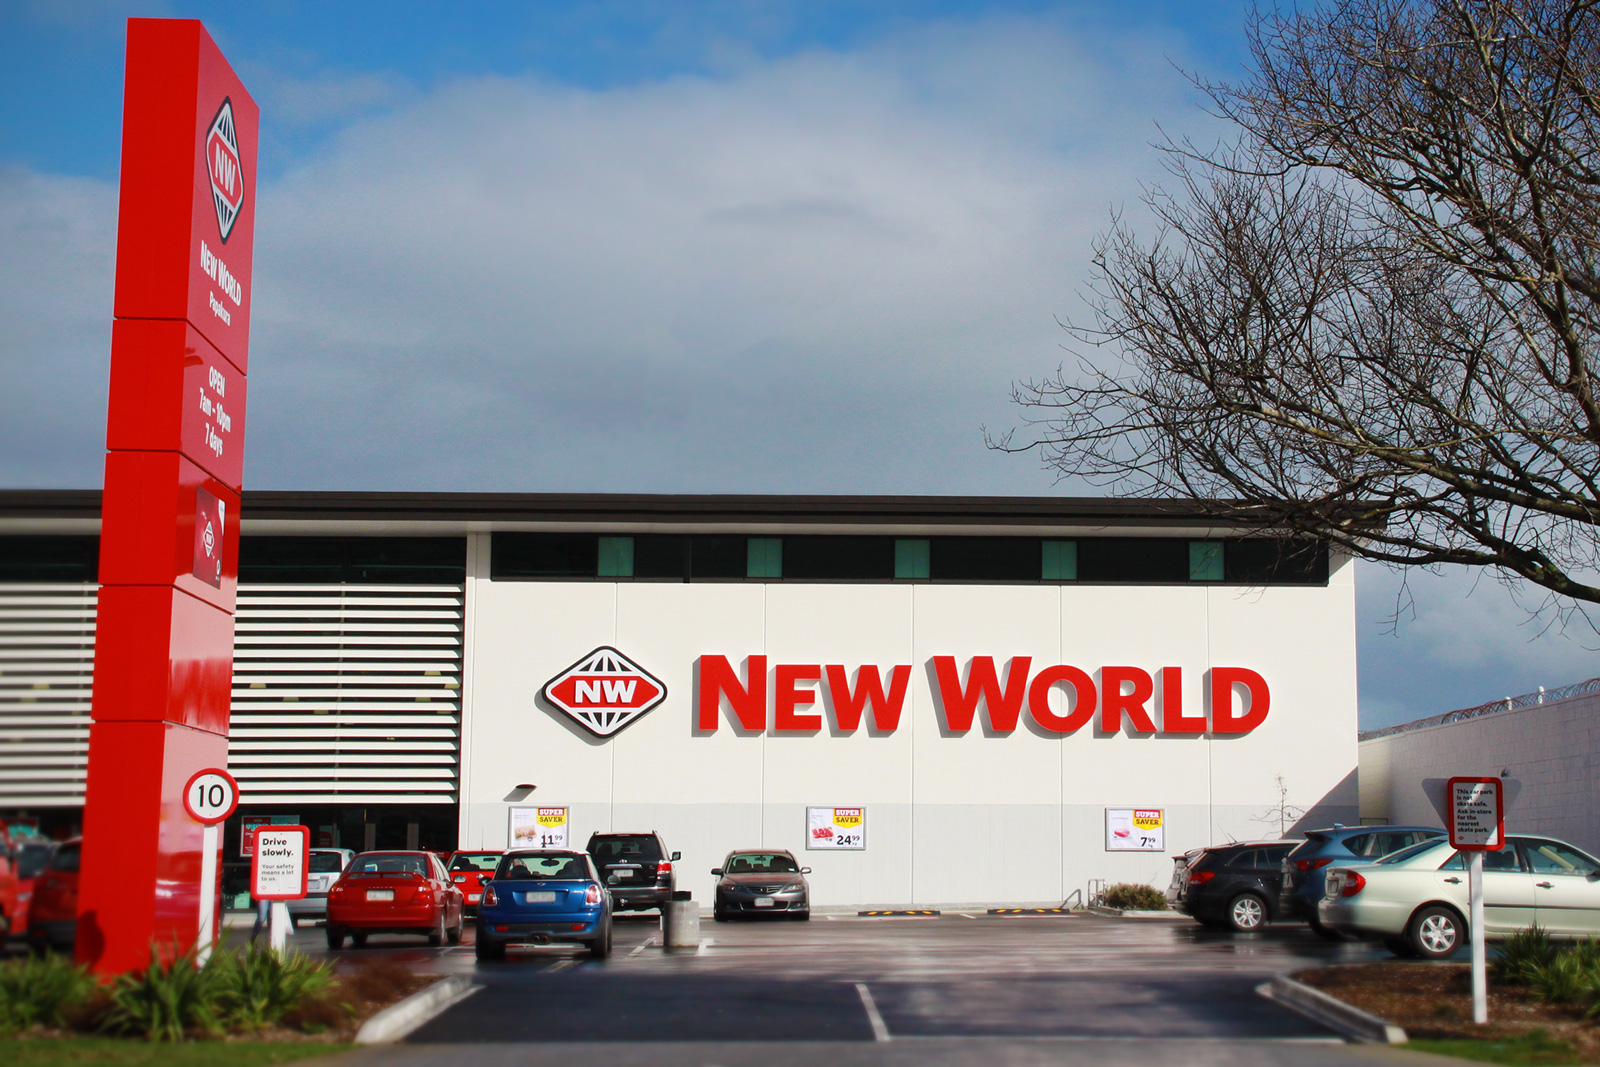 new world papakura 3d illuminated letters roadside pylon signage